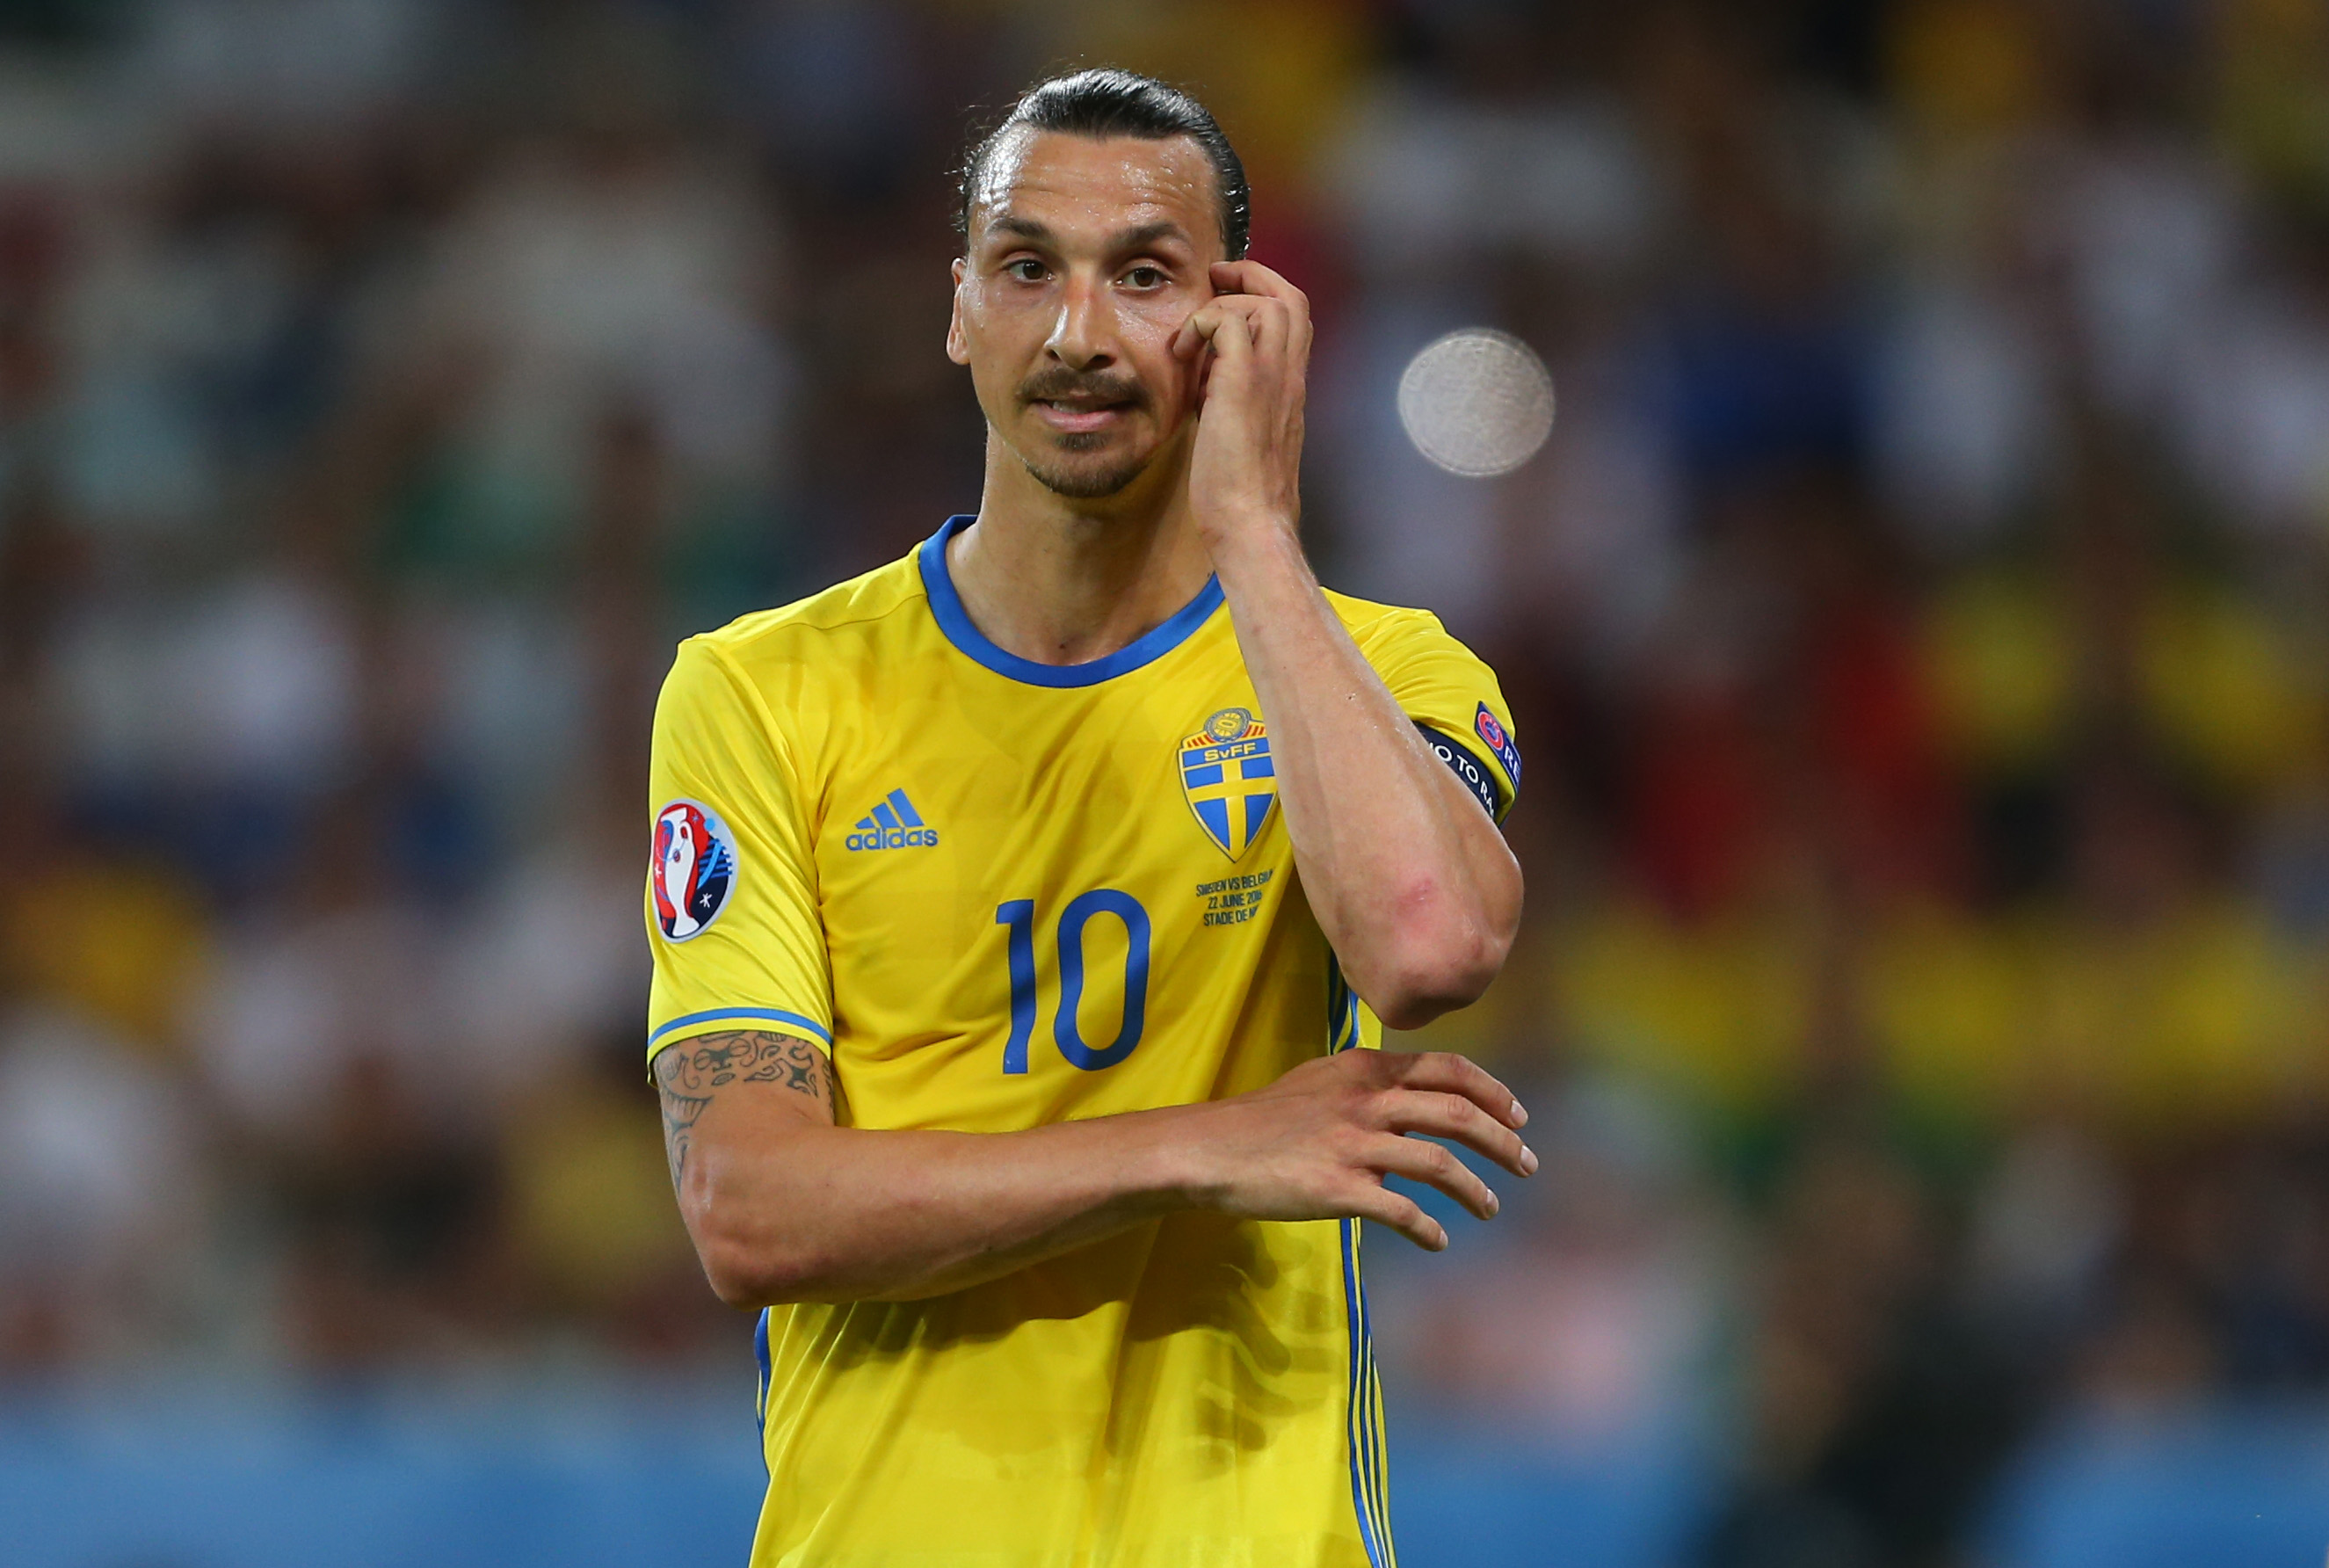 How will Zlatan Ibrahimovic's arrival at Old Trafford change Manchester United?